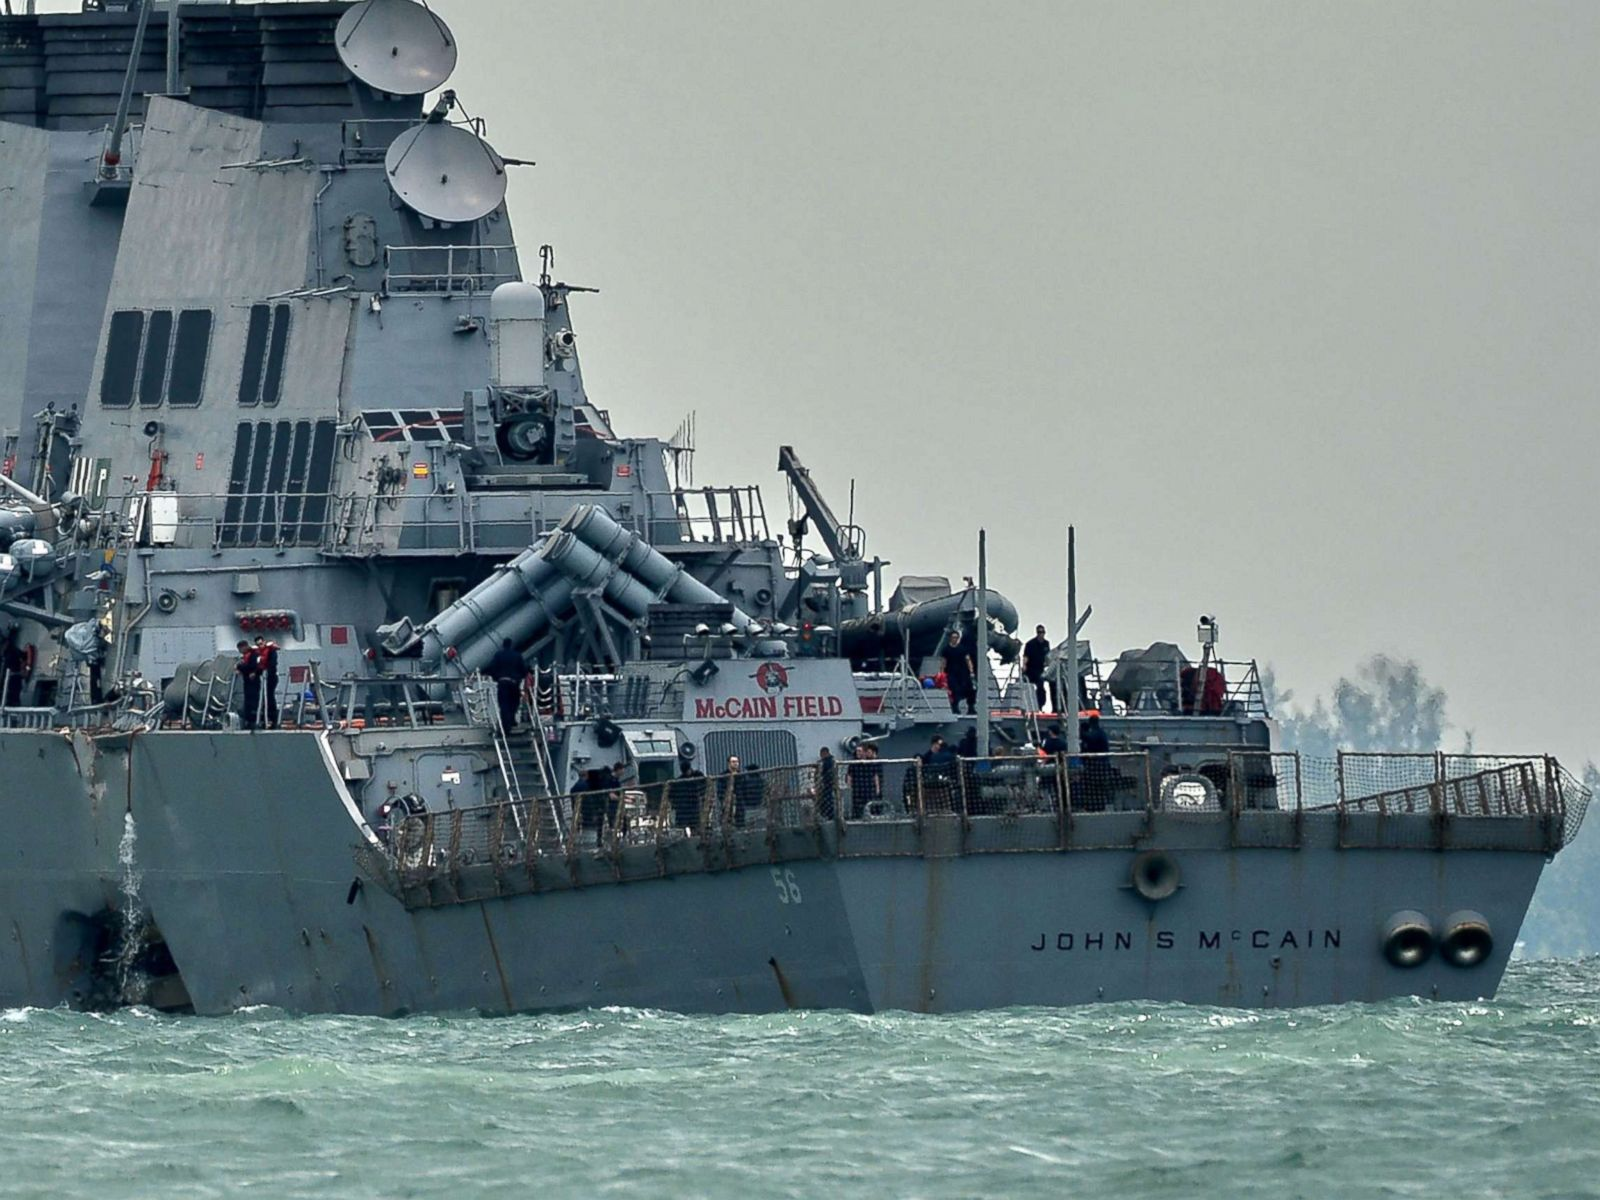 uss mccain the 4th navy warship to crash in asia this year